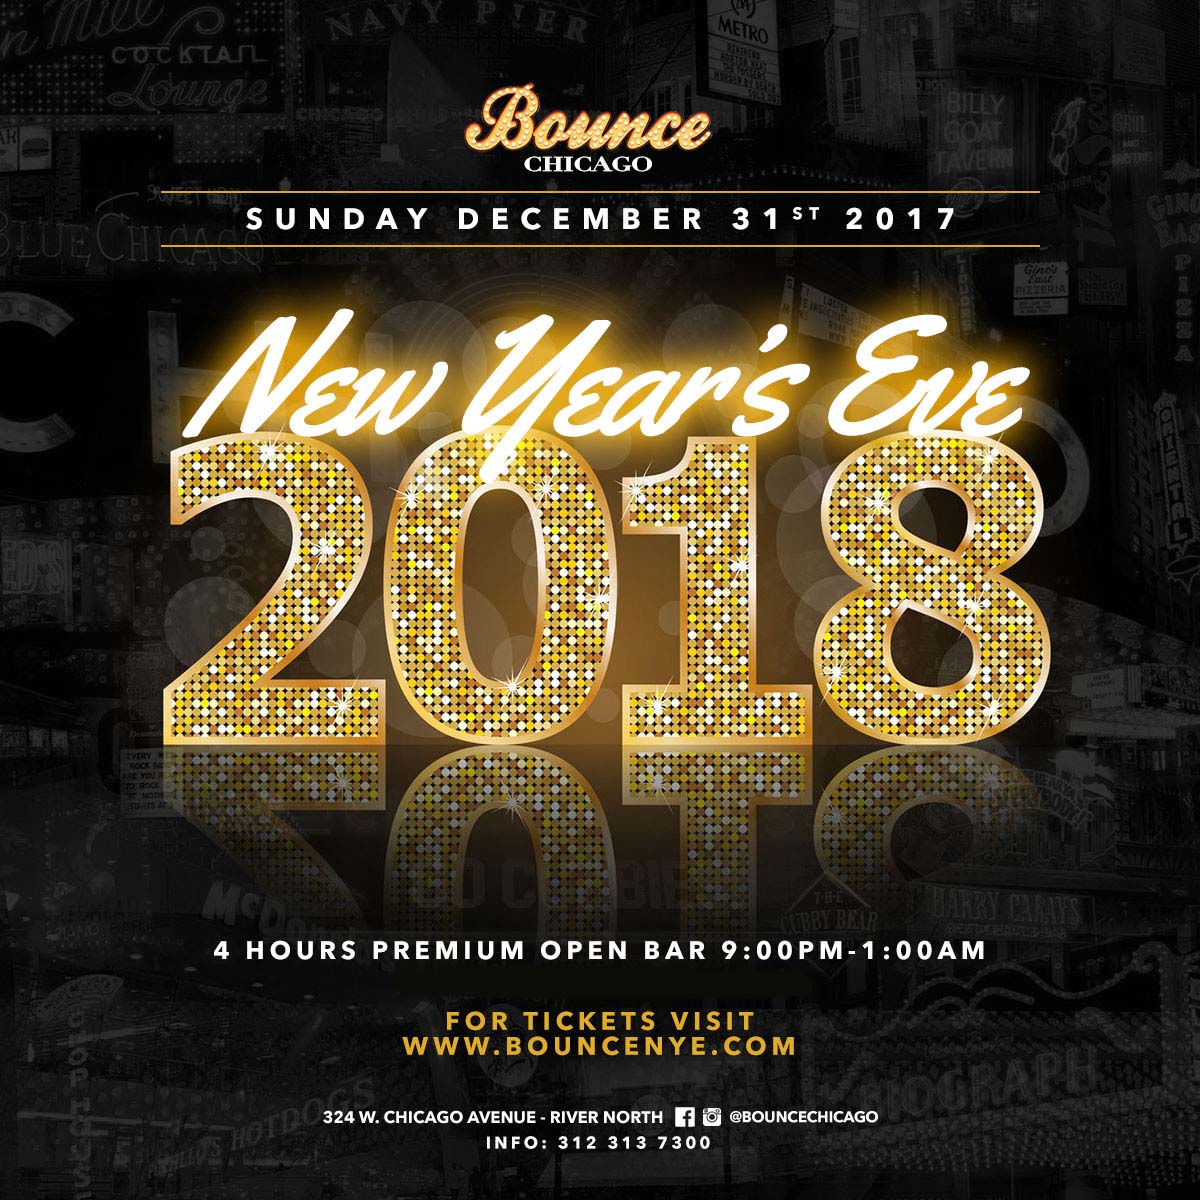 Bounce New Year's Eve Party 2018 - Tickets include: Tickets Include:  • Premium cocktails from 9pm-1am  • Champagne toast at midnight • Hors d'oeuvres from 9pm-10:30pm